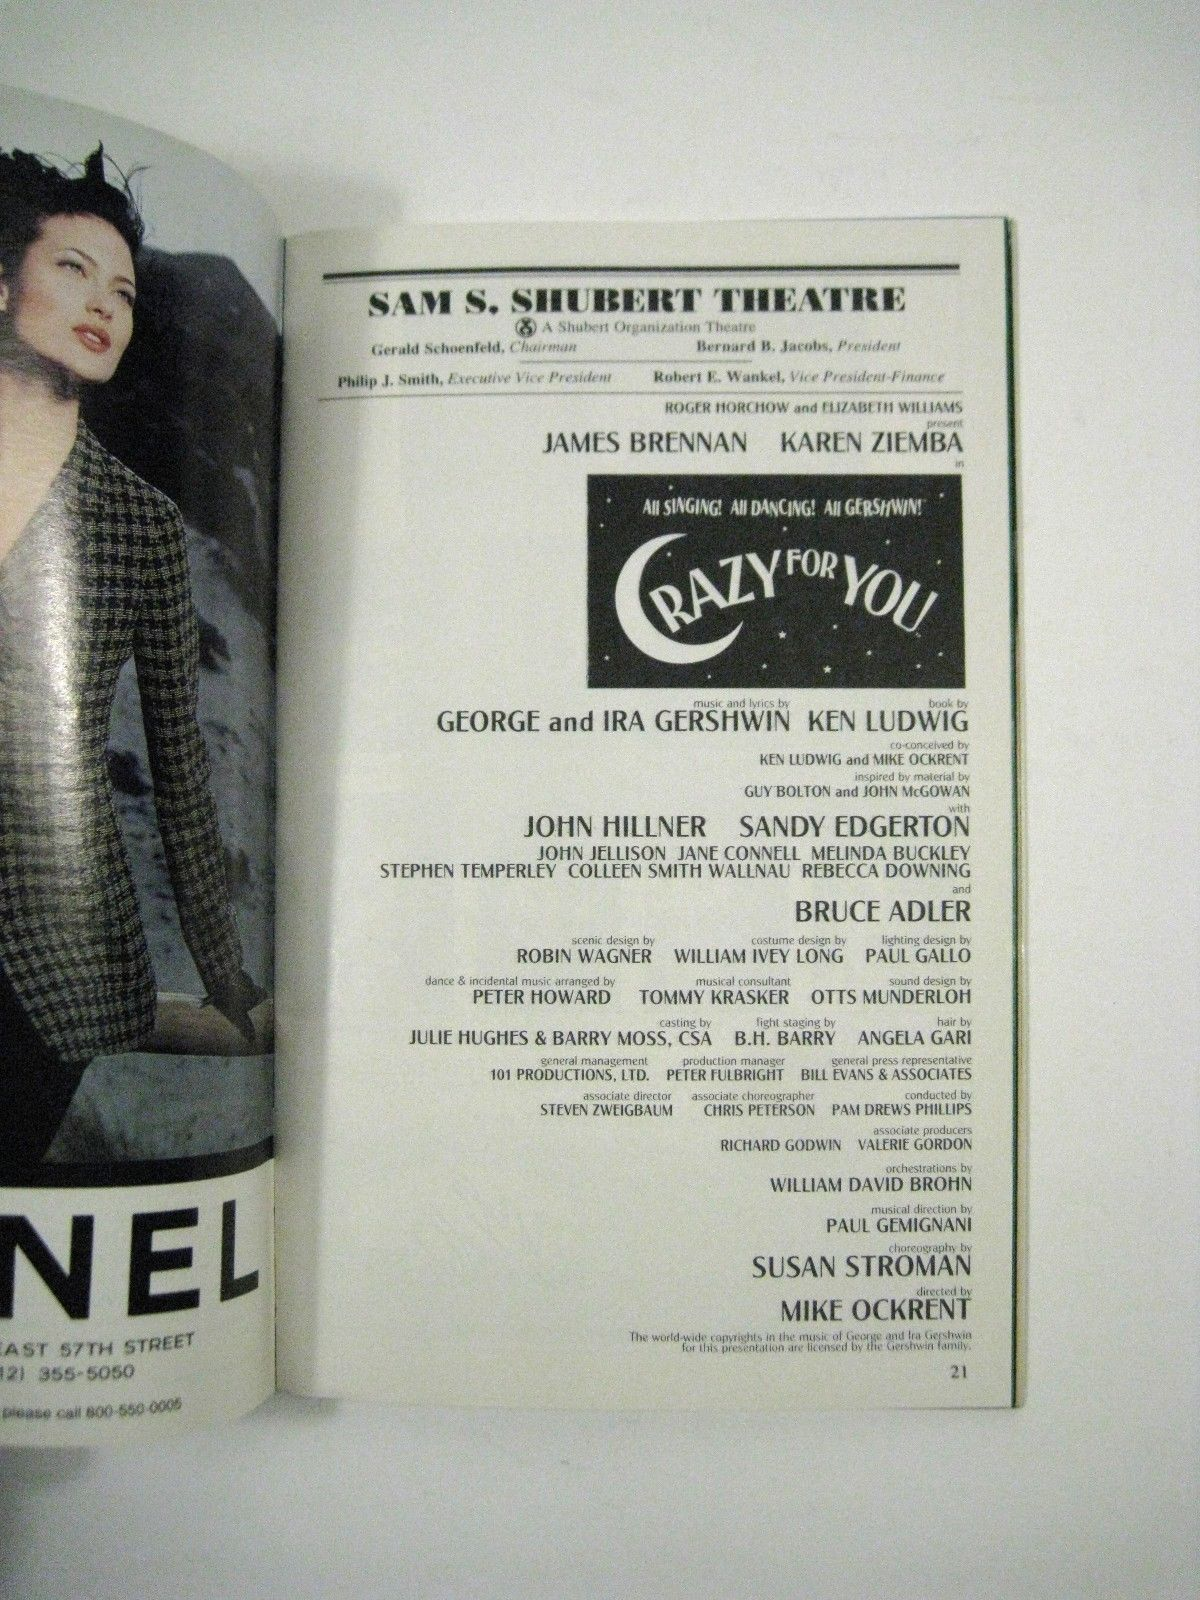 Crazy for You Playbill July 1995 Shubert Theatre Volume 95 No 7 James Brennan